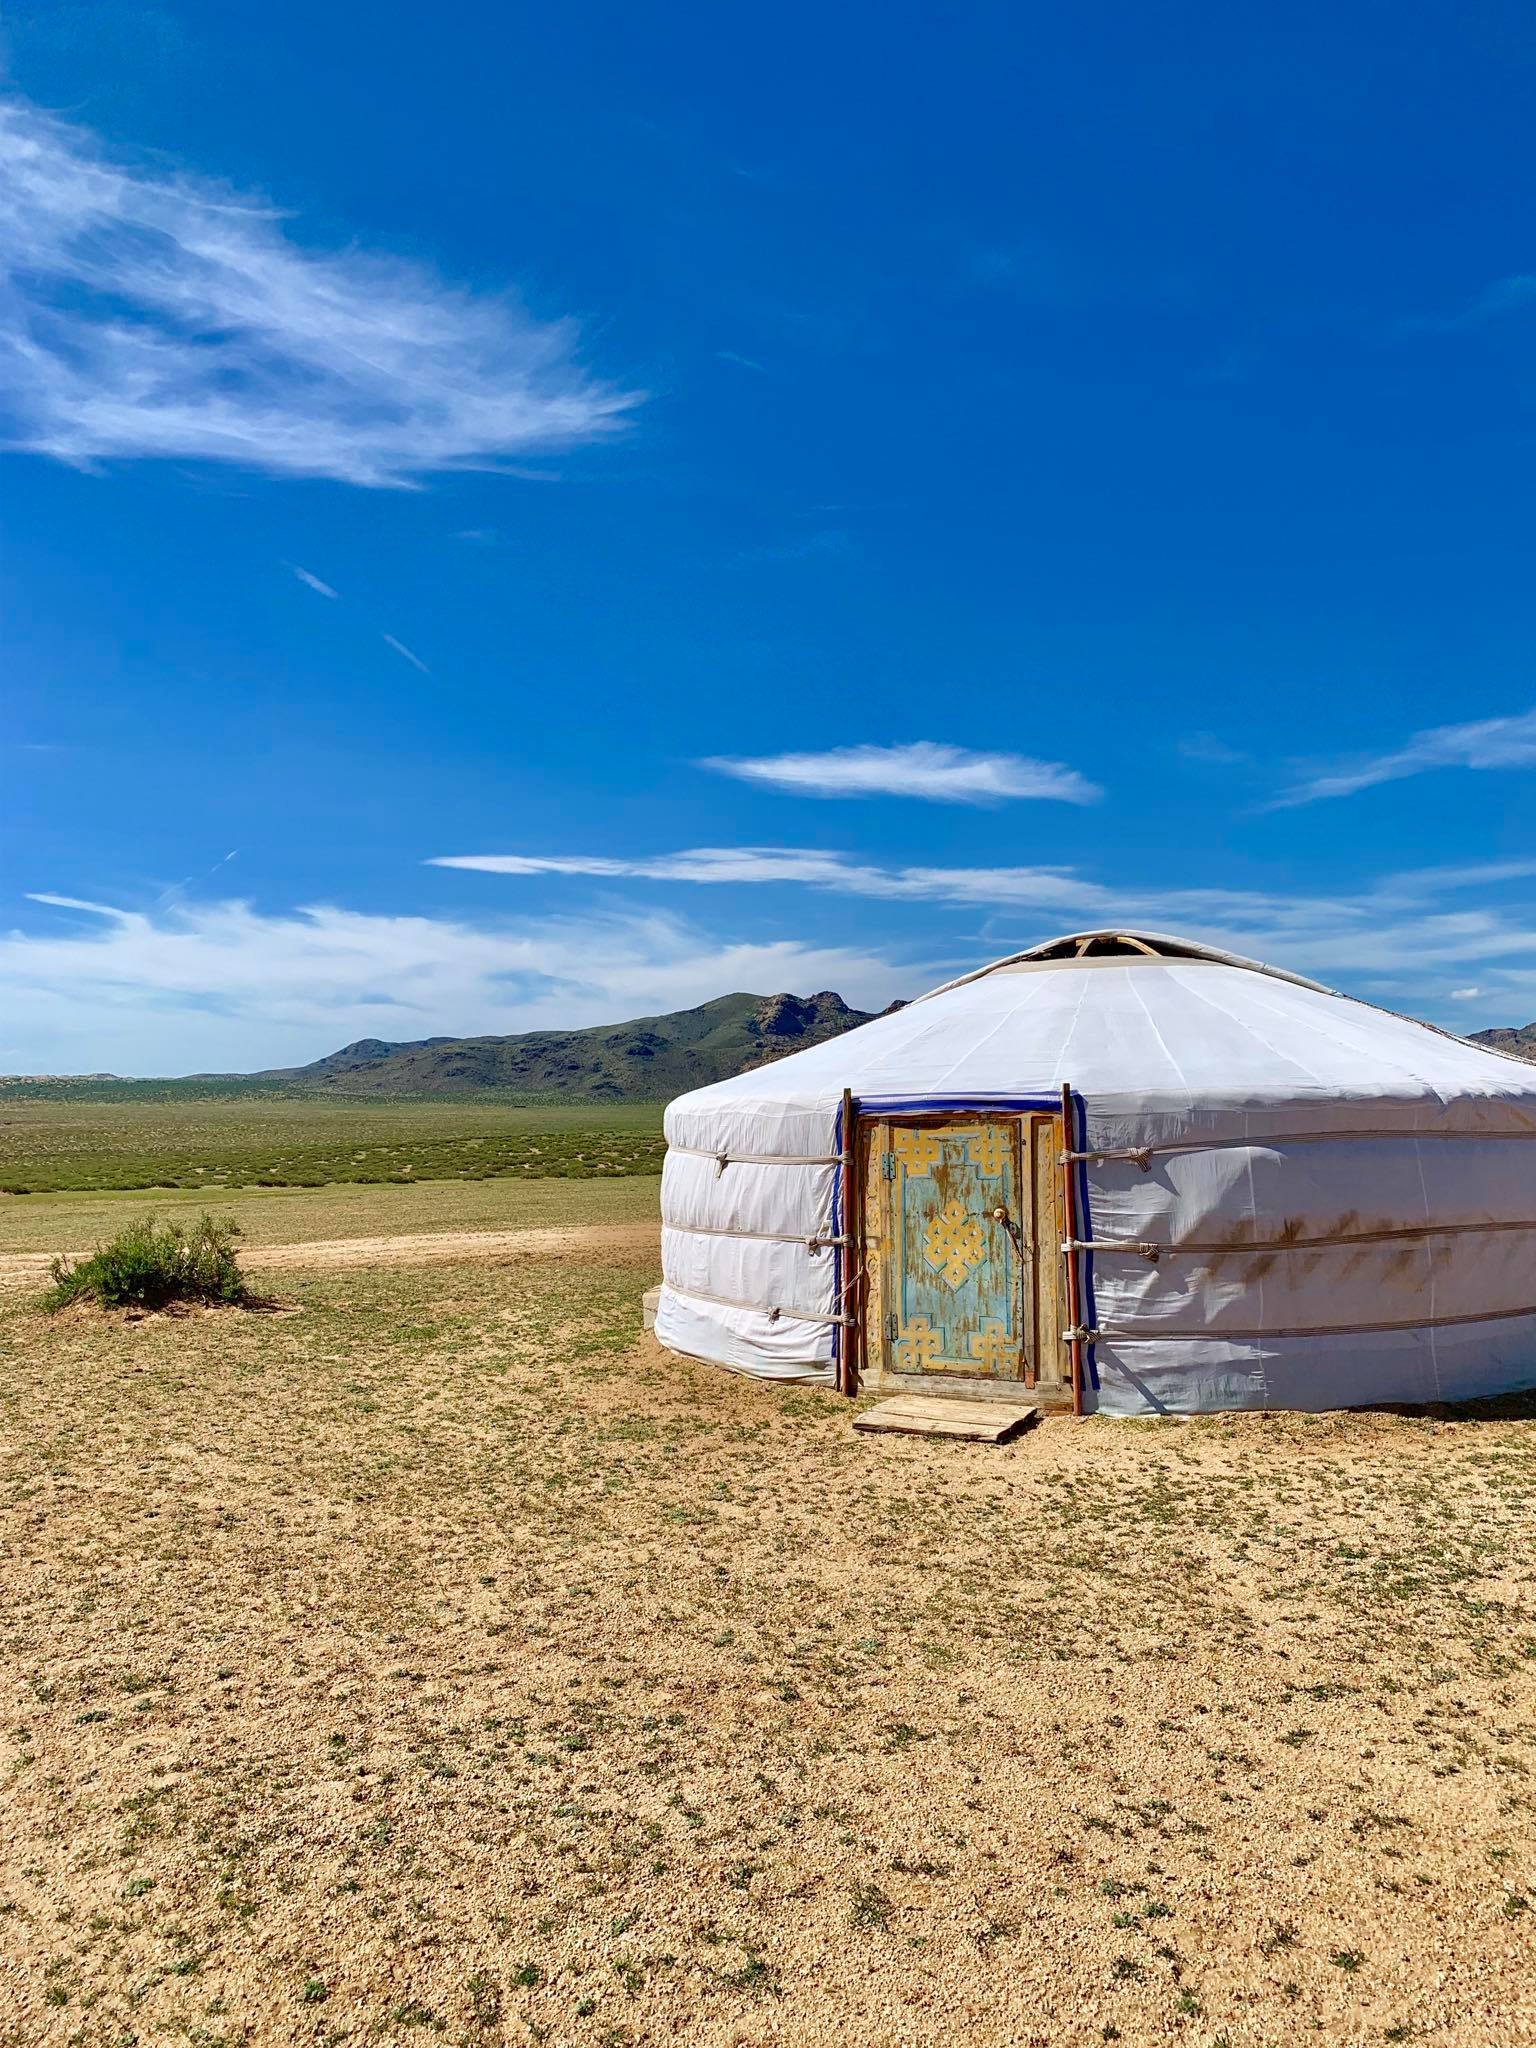 Kach Solo Travels in 2019 My place for 3 days here in Mongolia10.jpg